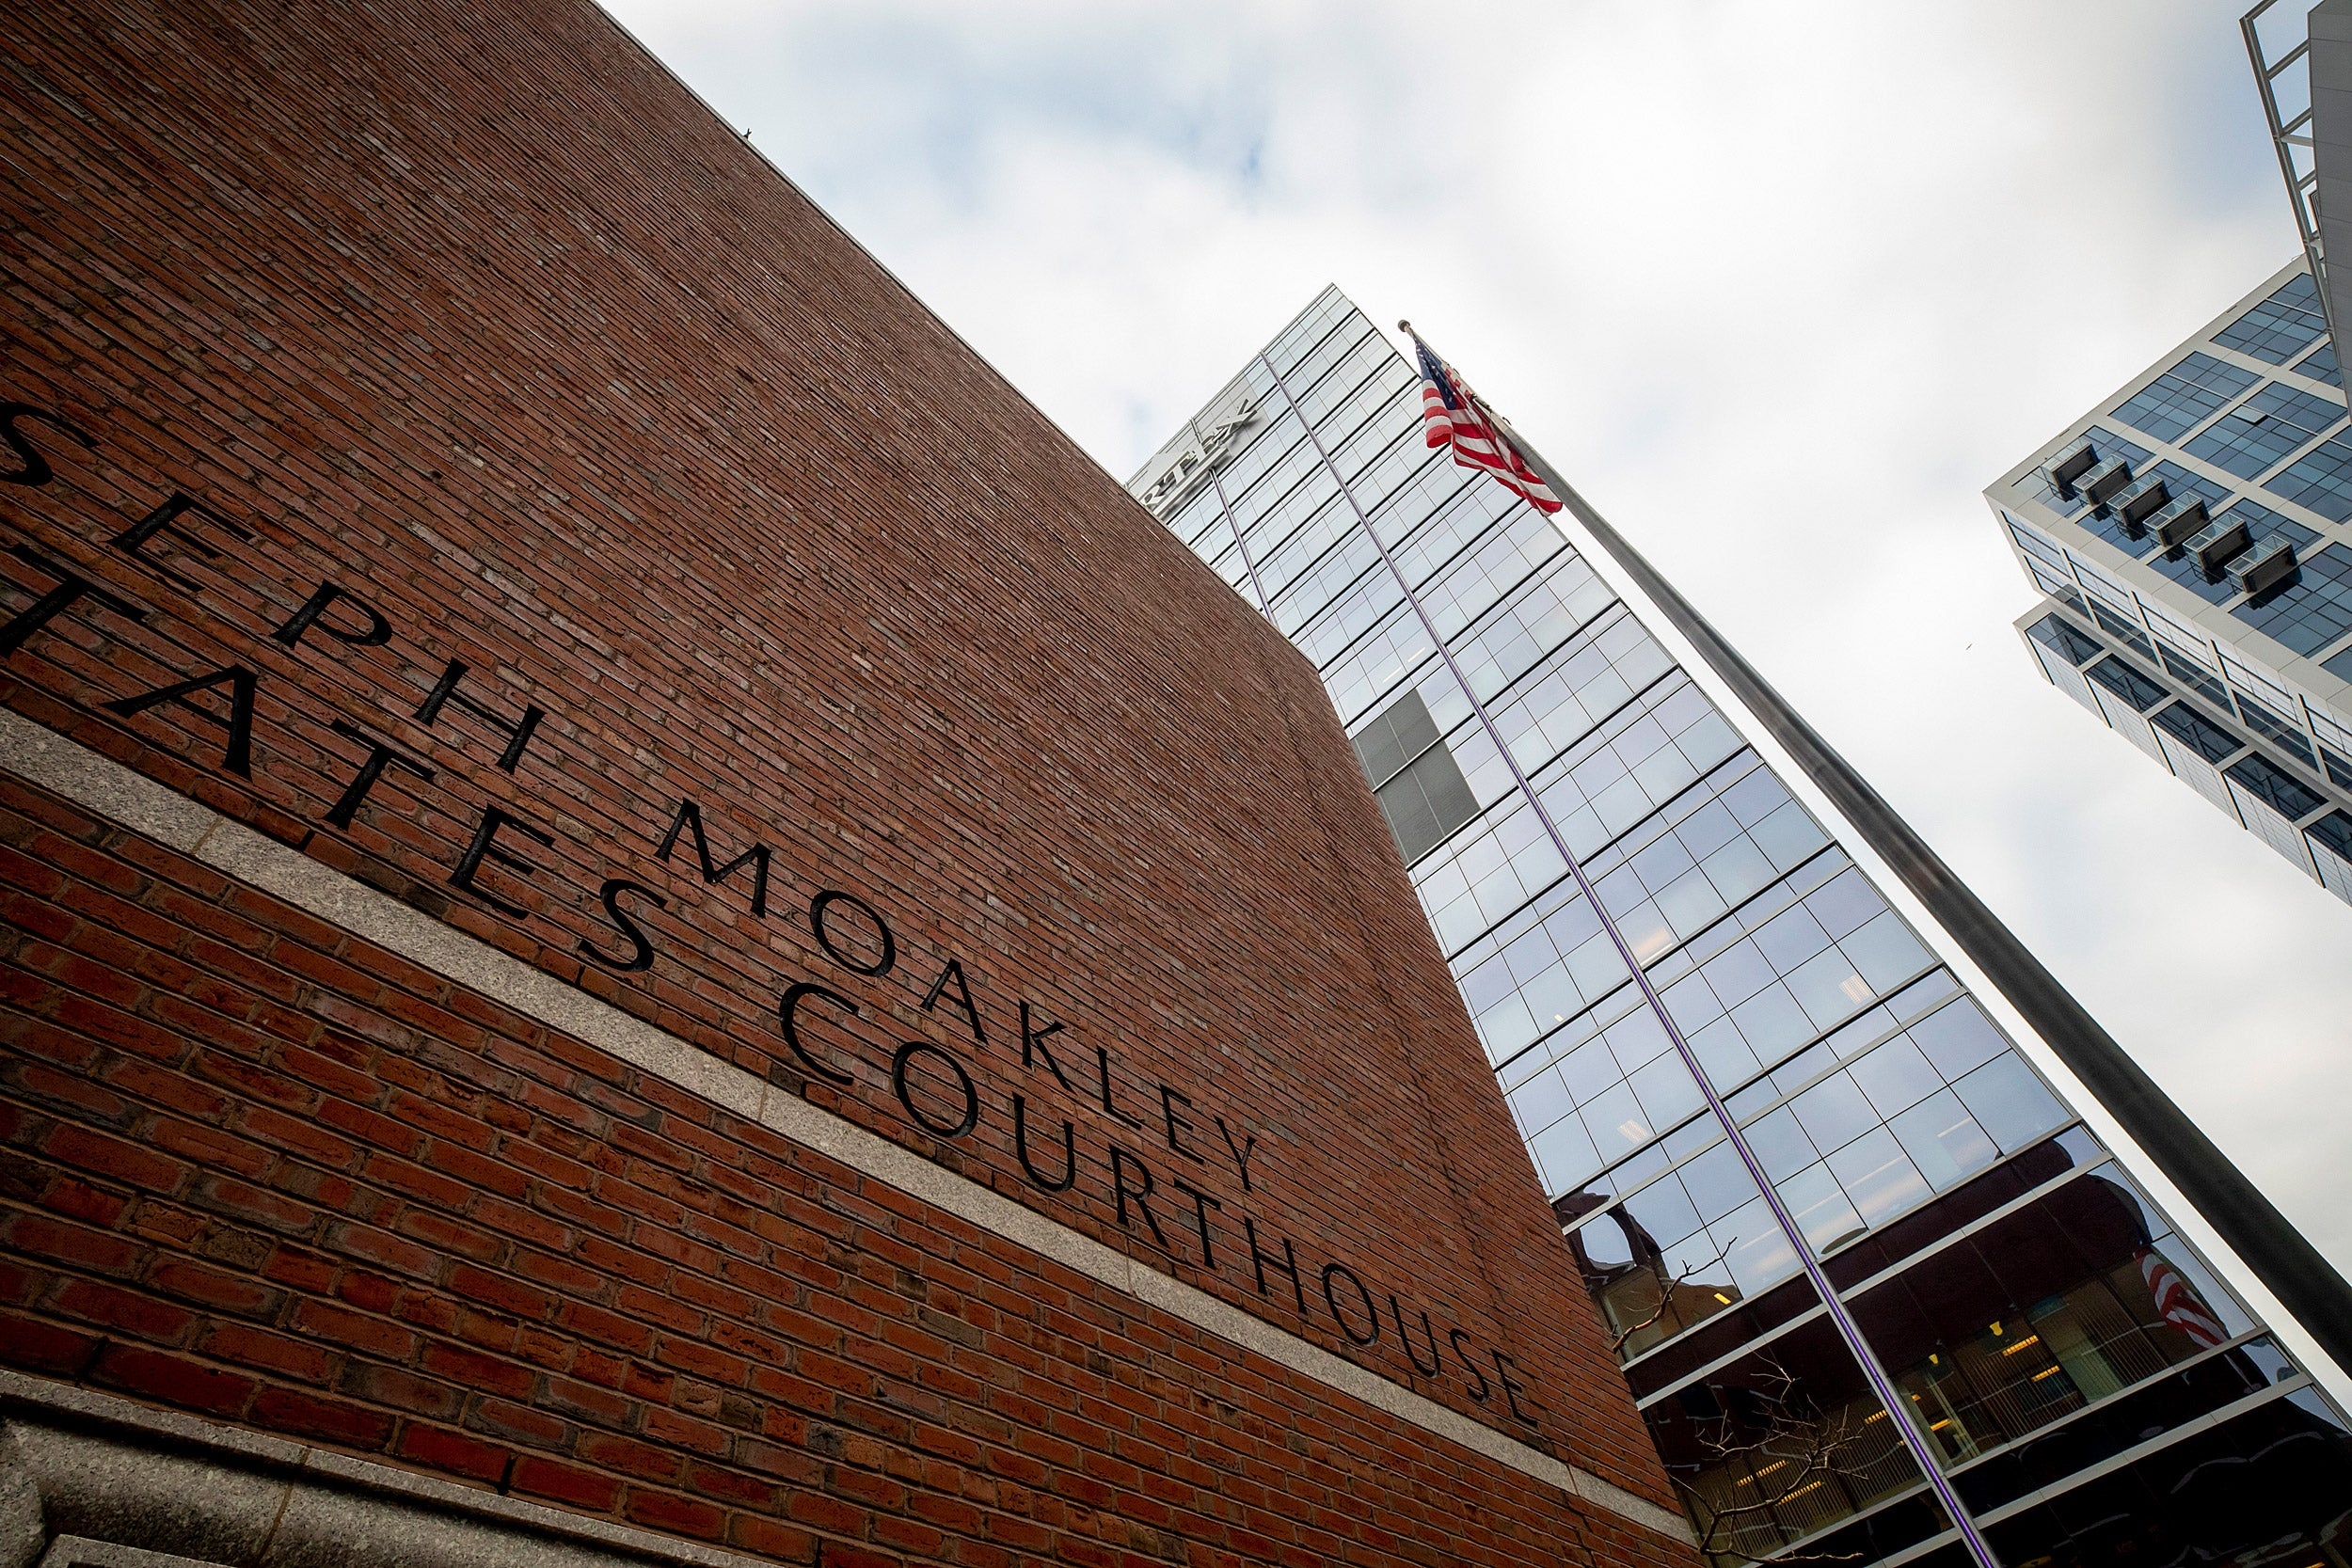 Closing arguments were heard in court at Boston's Moakley Courthouse in the discrimination trial against the Admissions Department at Harvard University.